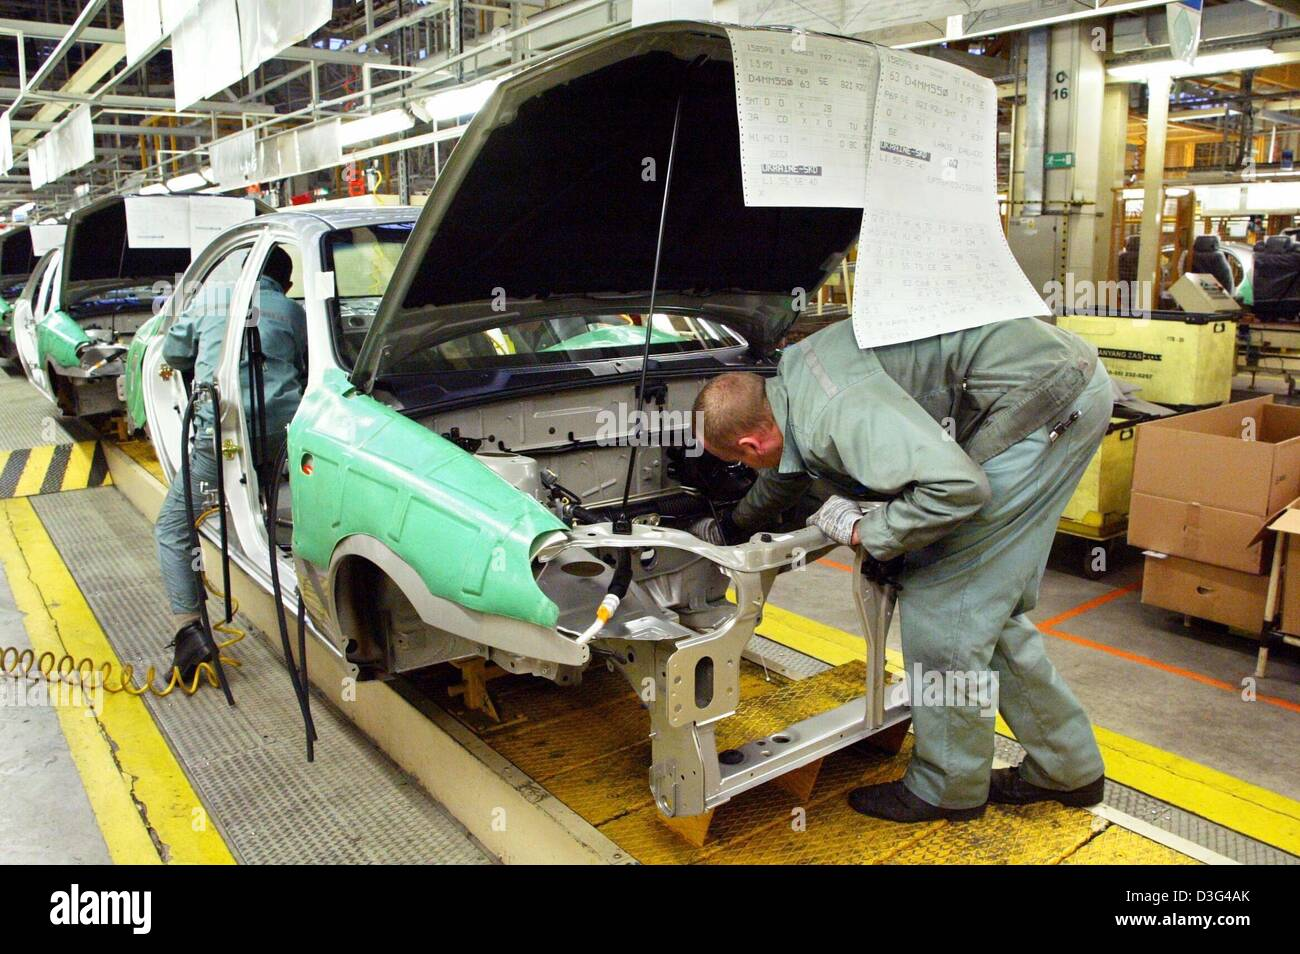 Factory Manufacturer Parts Dpa Workers Assemble Car Body Parts In A Factory Of The